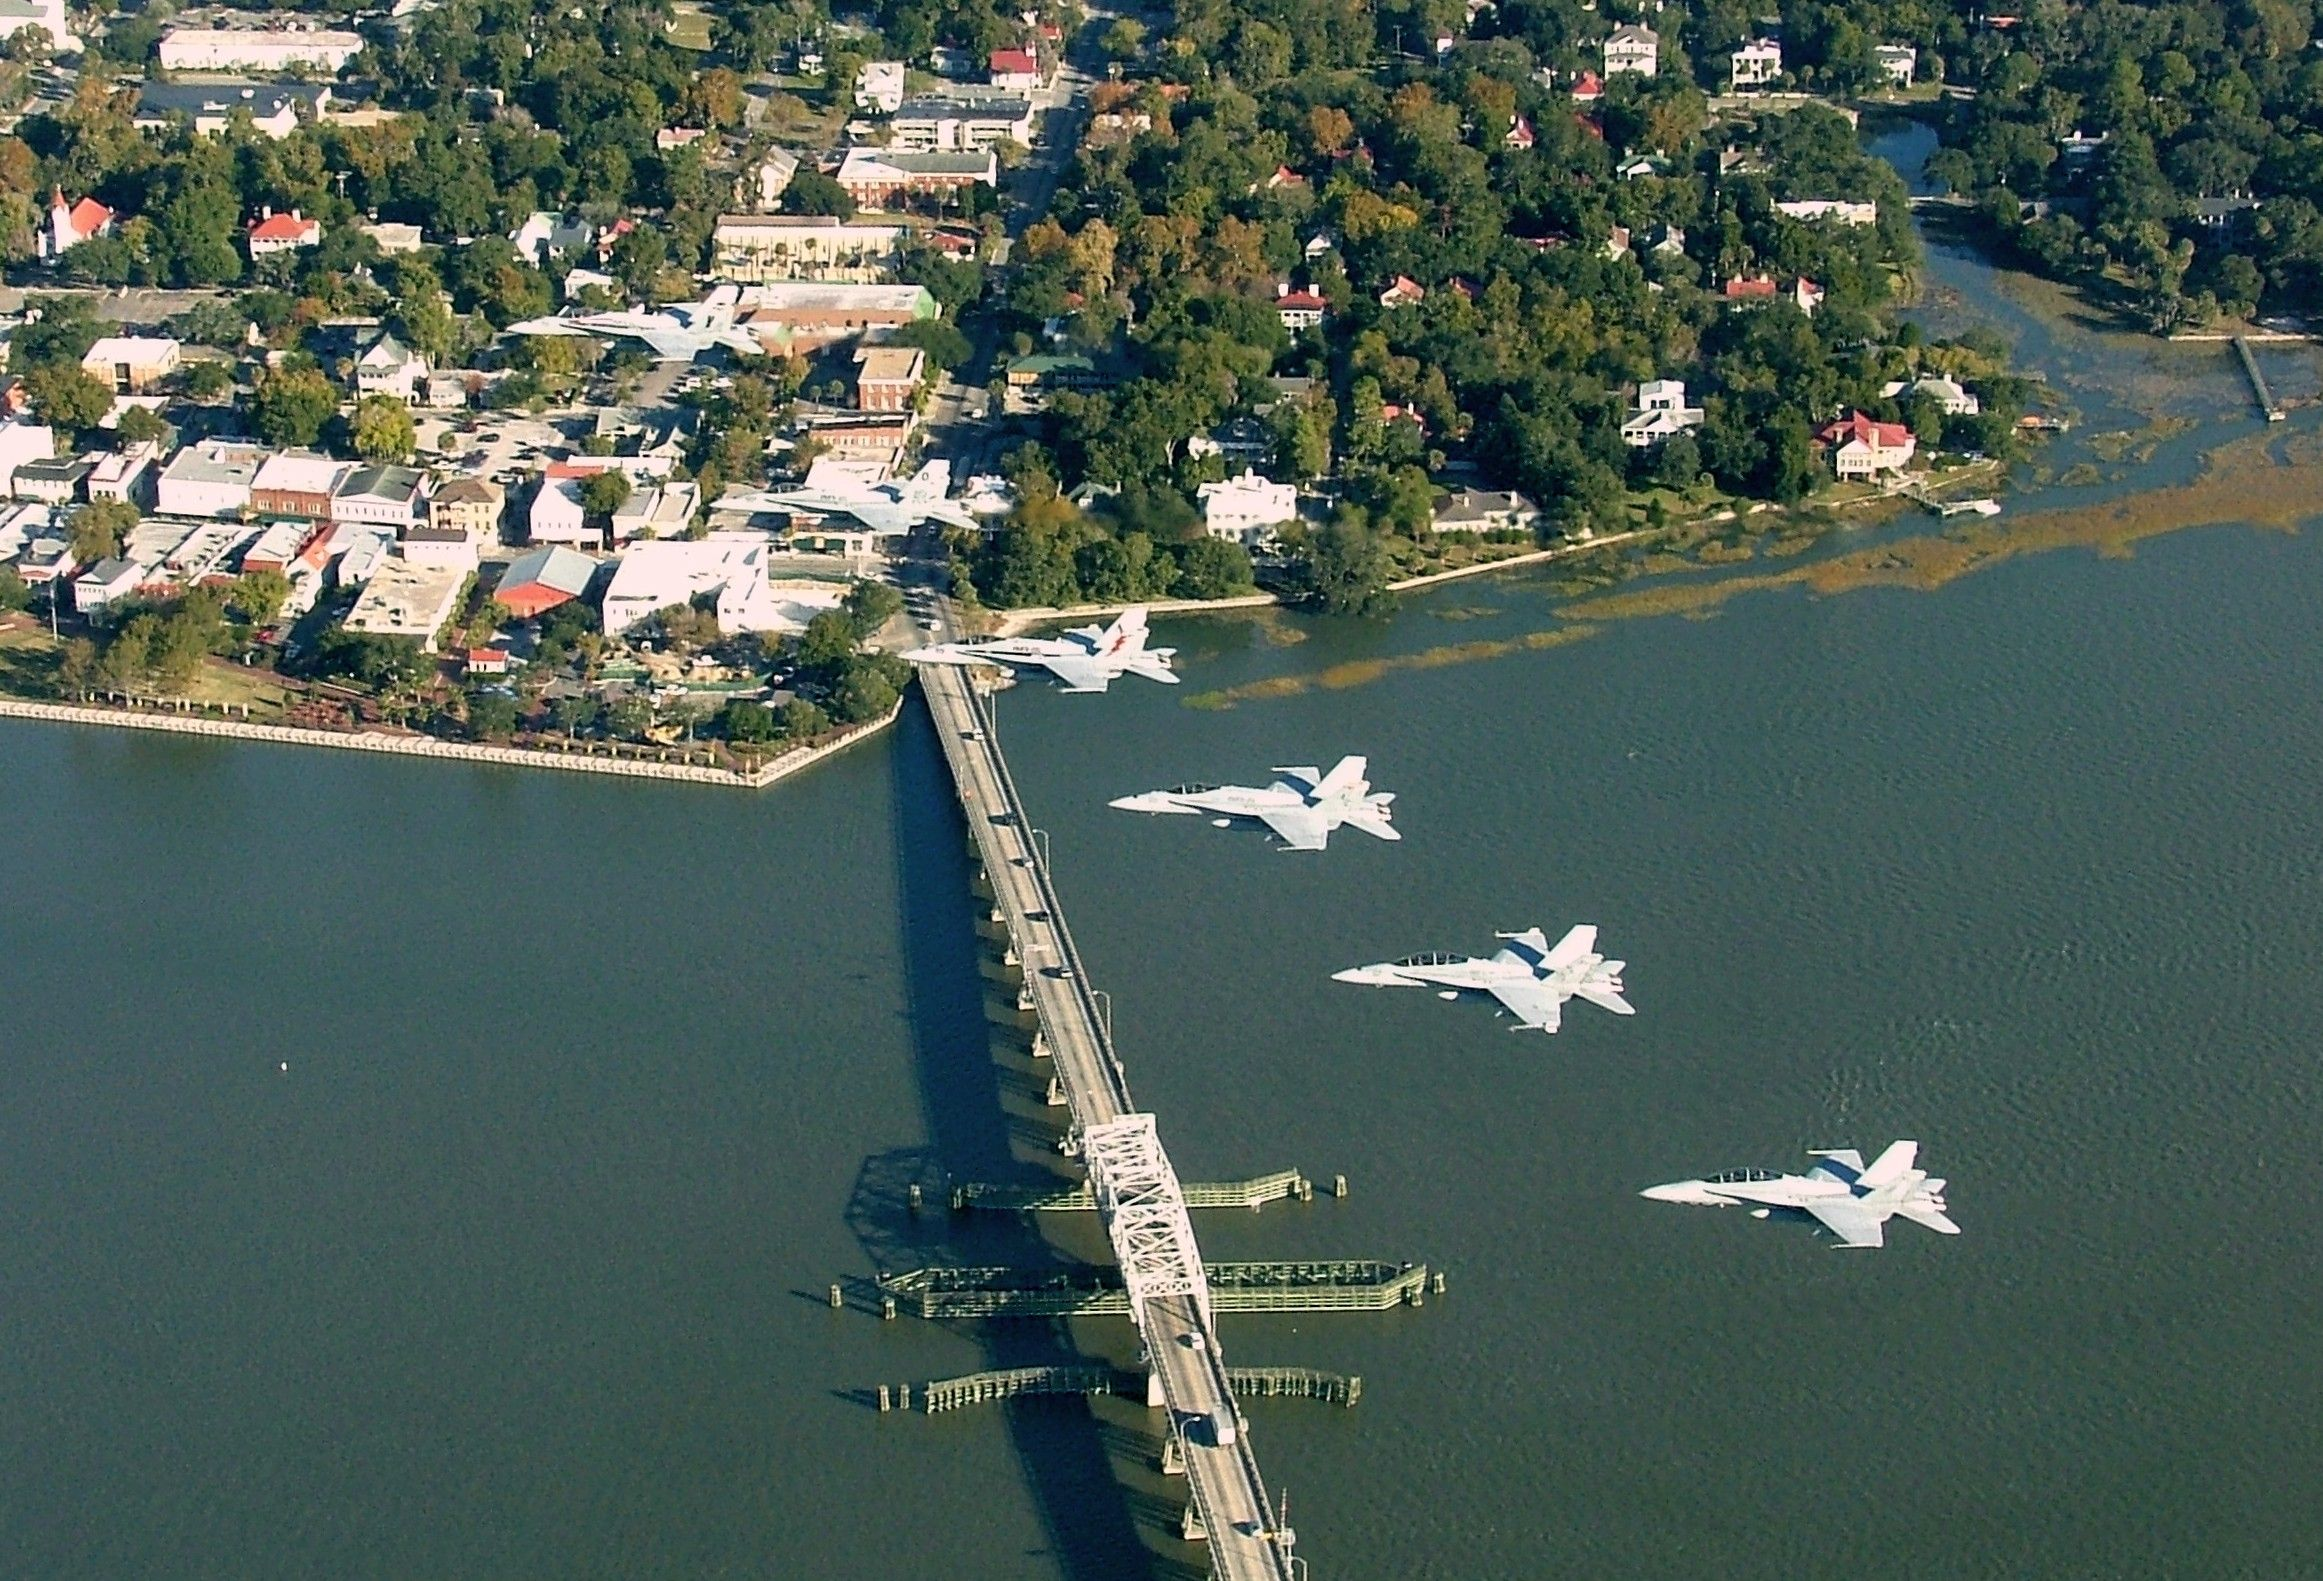 Mcas Beaufort Jets Fly Over Downtown Beaufort Sc That Noise You Hear Is The Sound Of Freedom Marine Corps Beaufort Marine